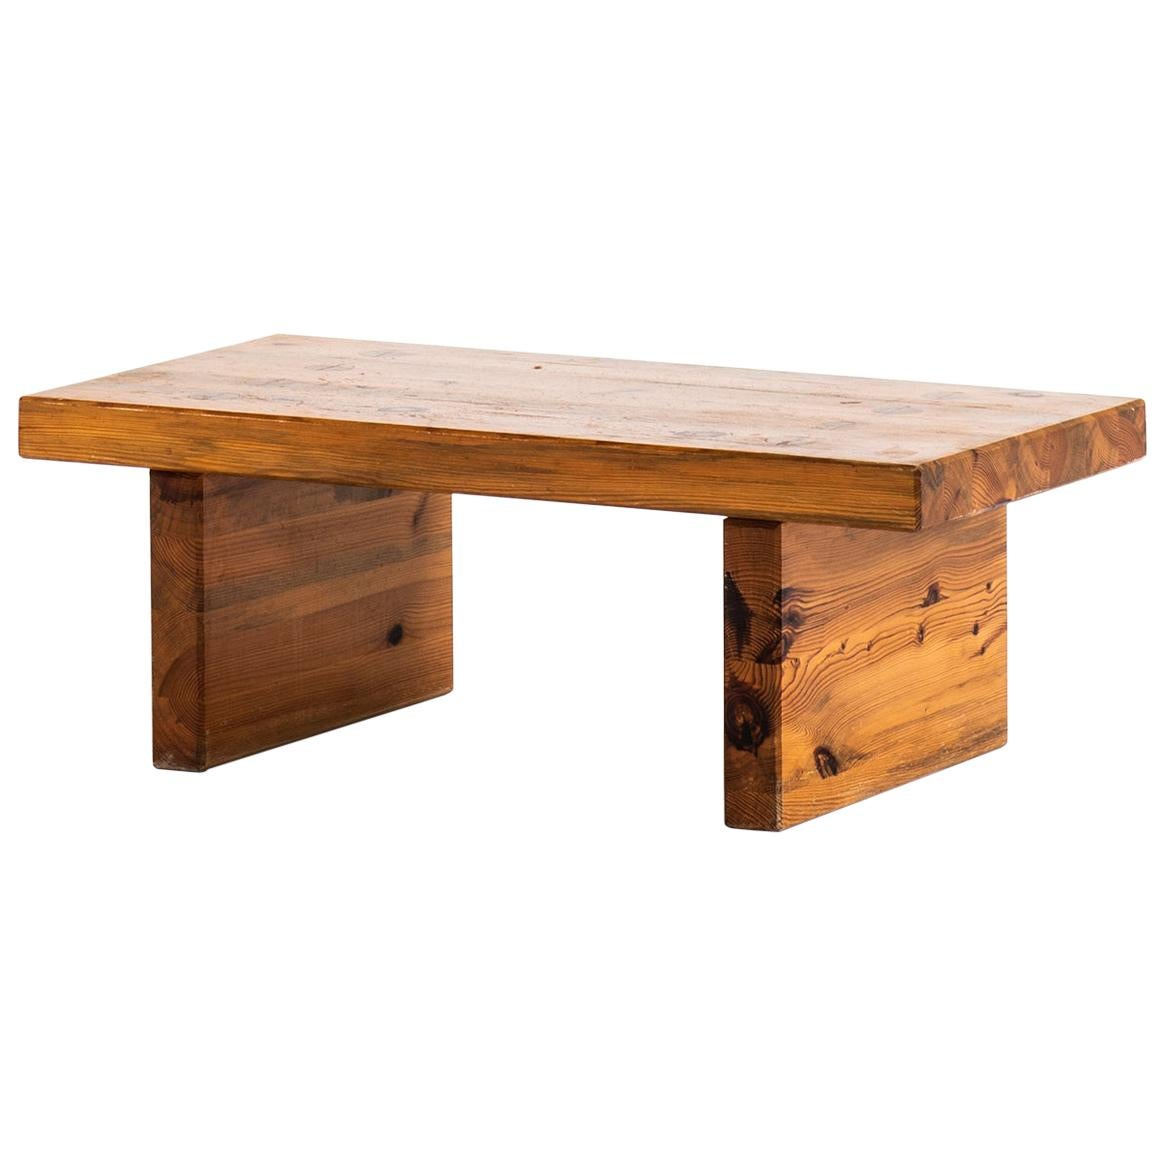 Roland Wilhelmsson Table in Pine by Karl Andersson & Söner in Sweden